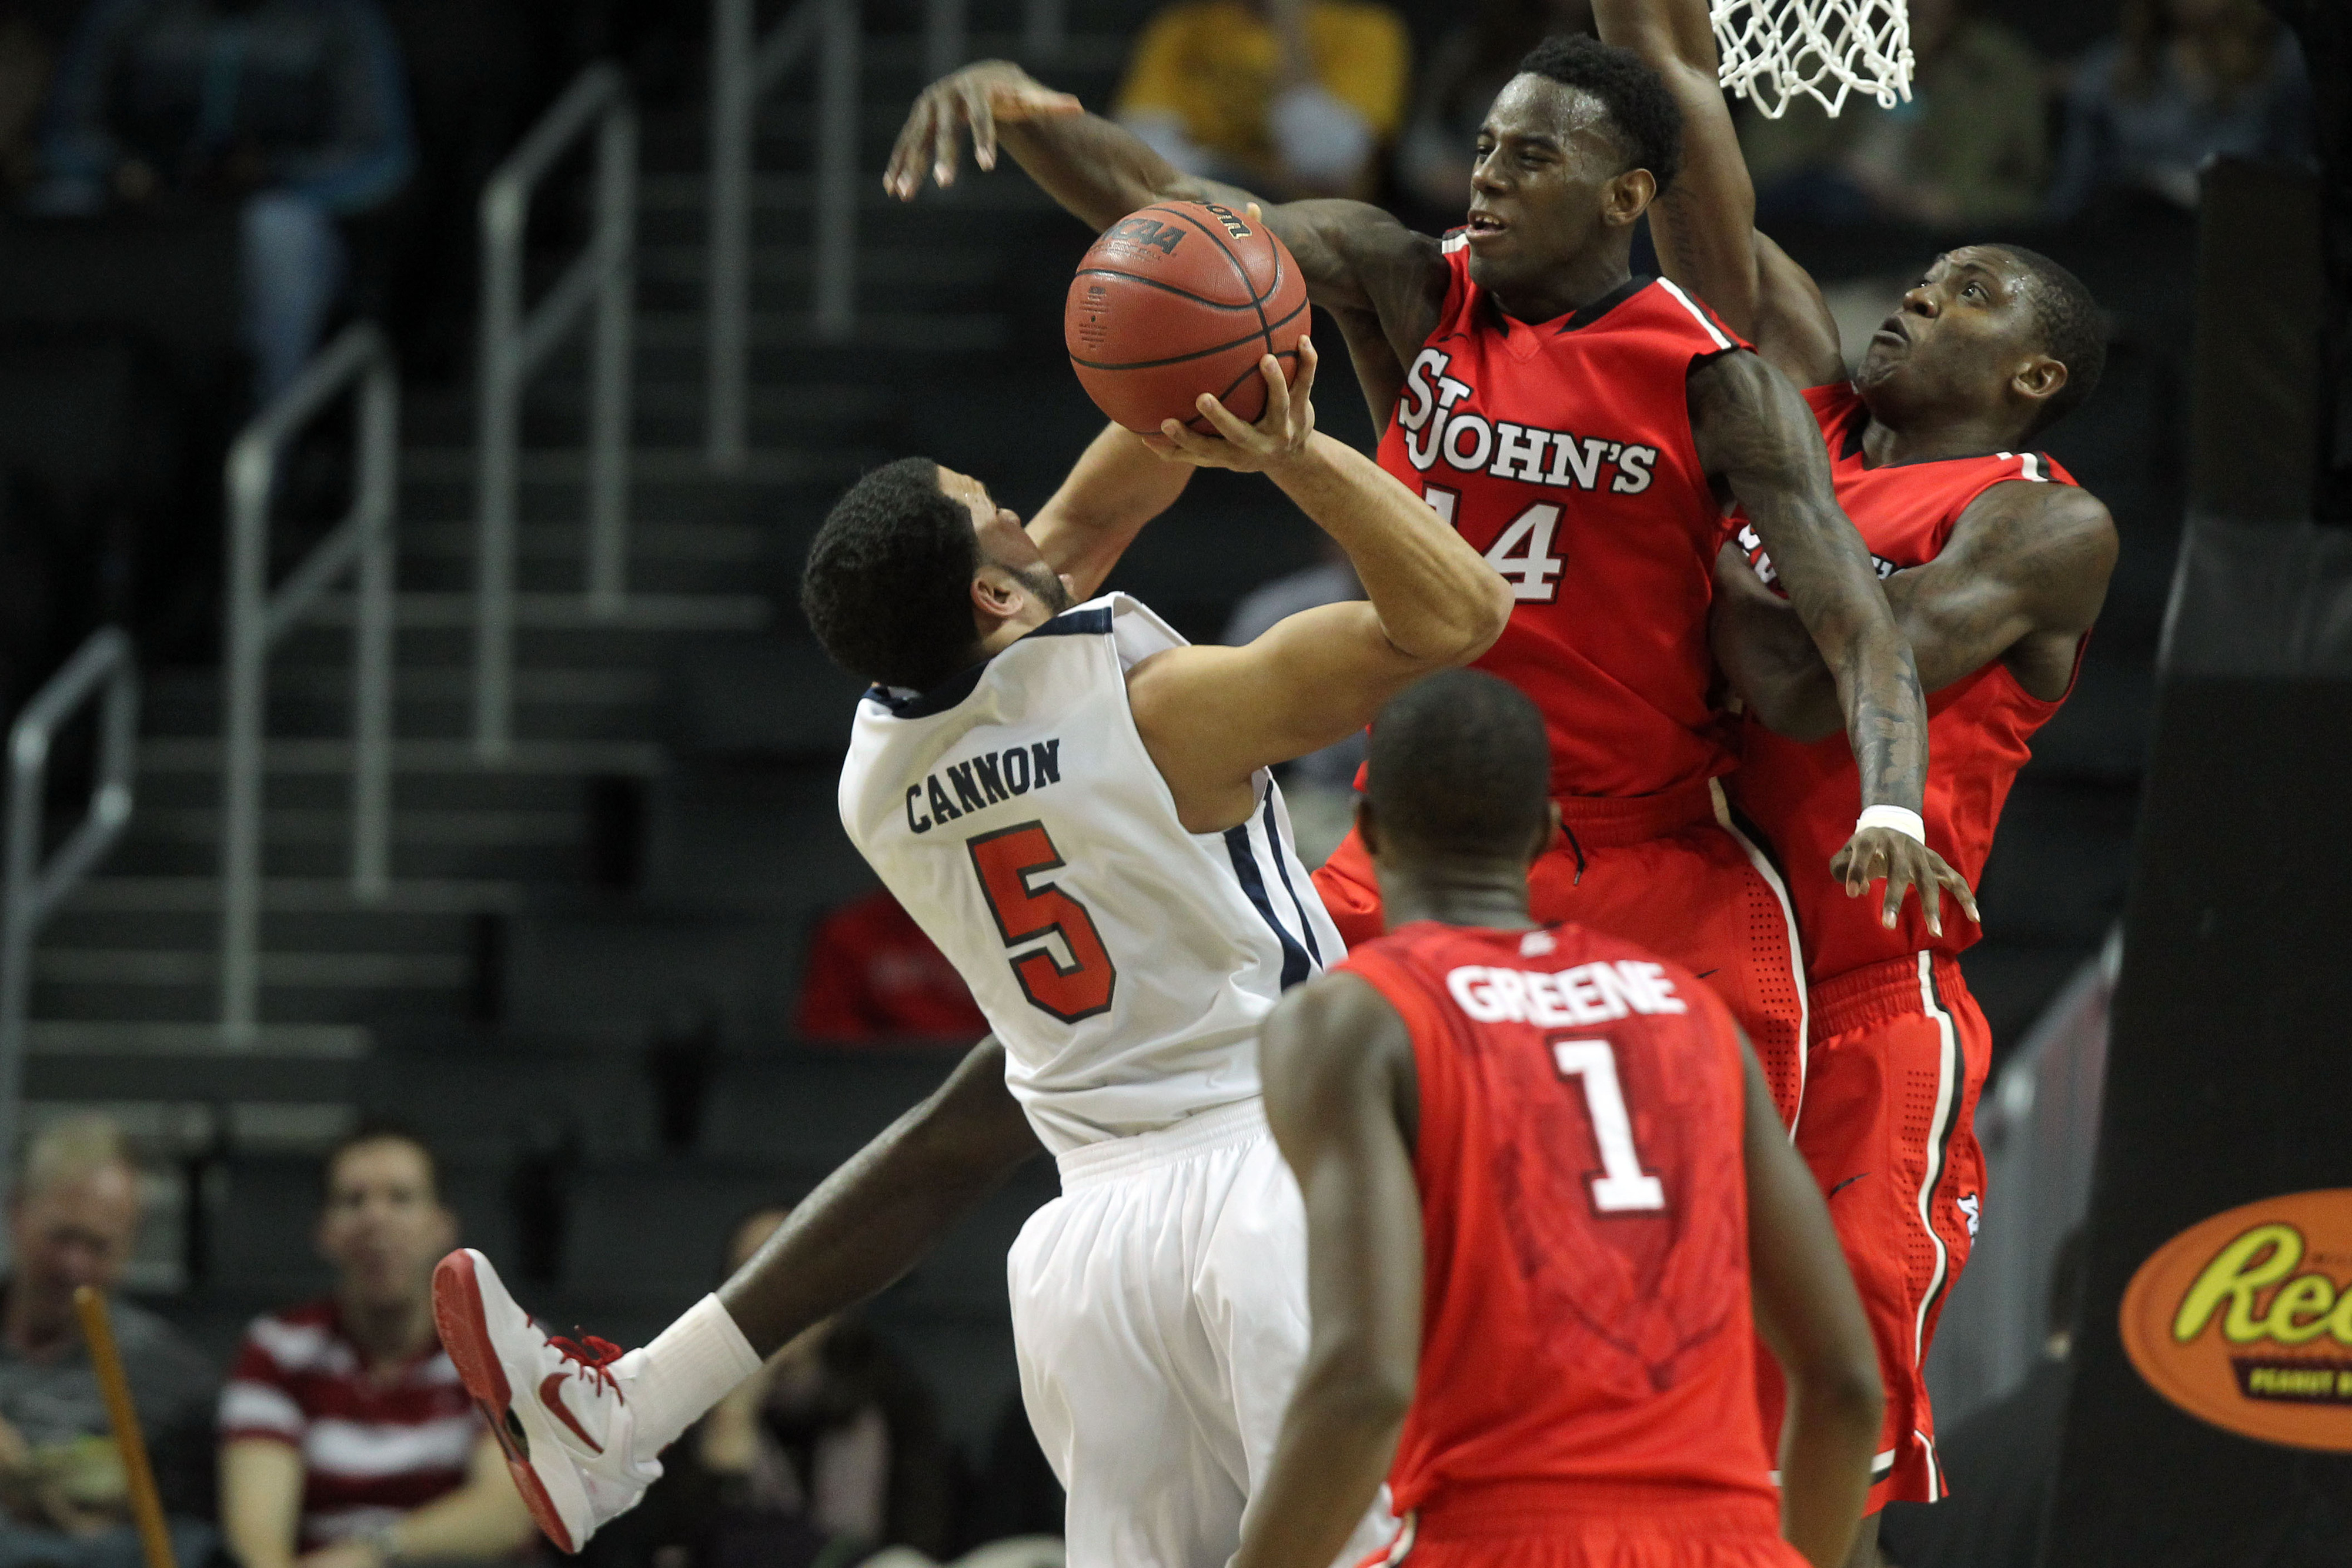 St. John's lead the nation in shot-blocking, but have struggled to put away opponents.